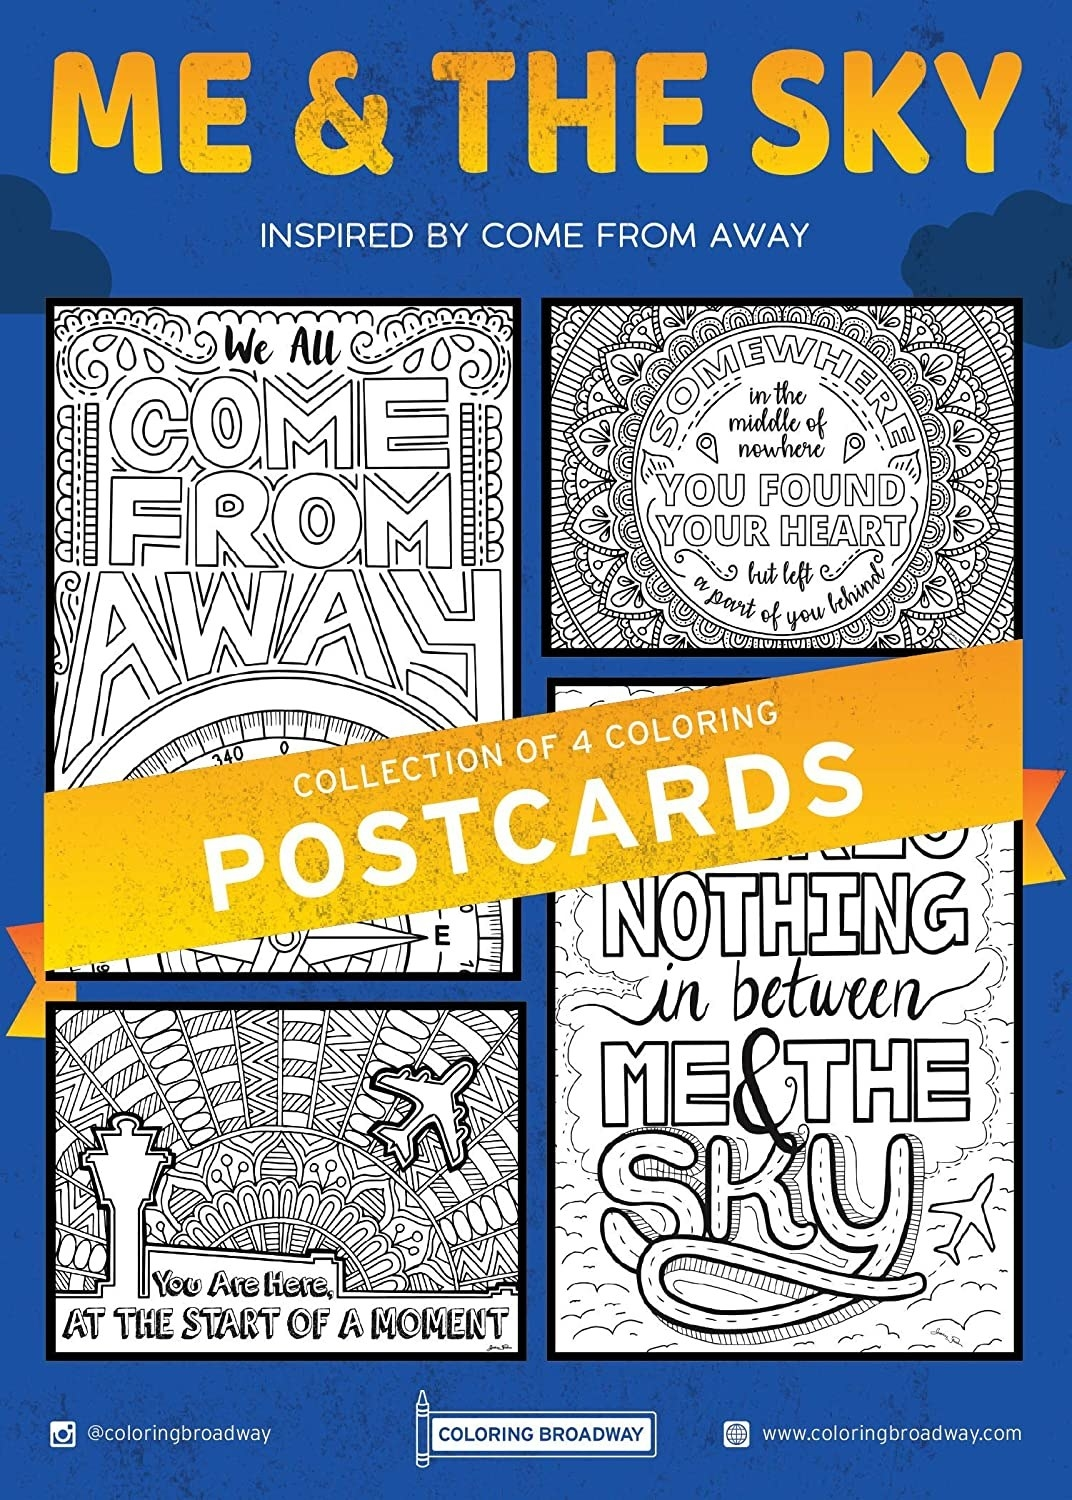 The four postcards included on a blue background